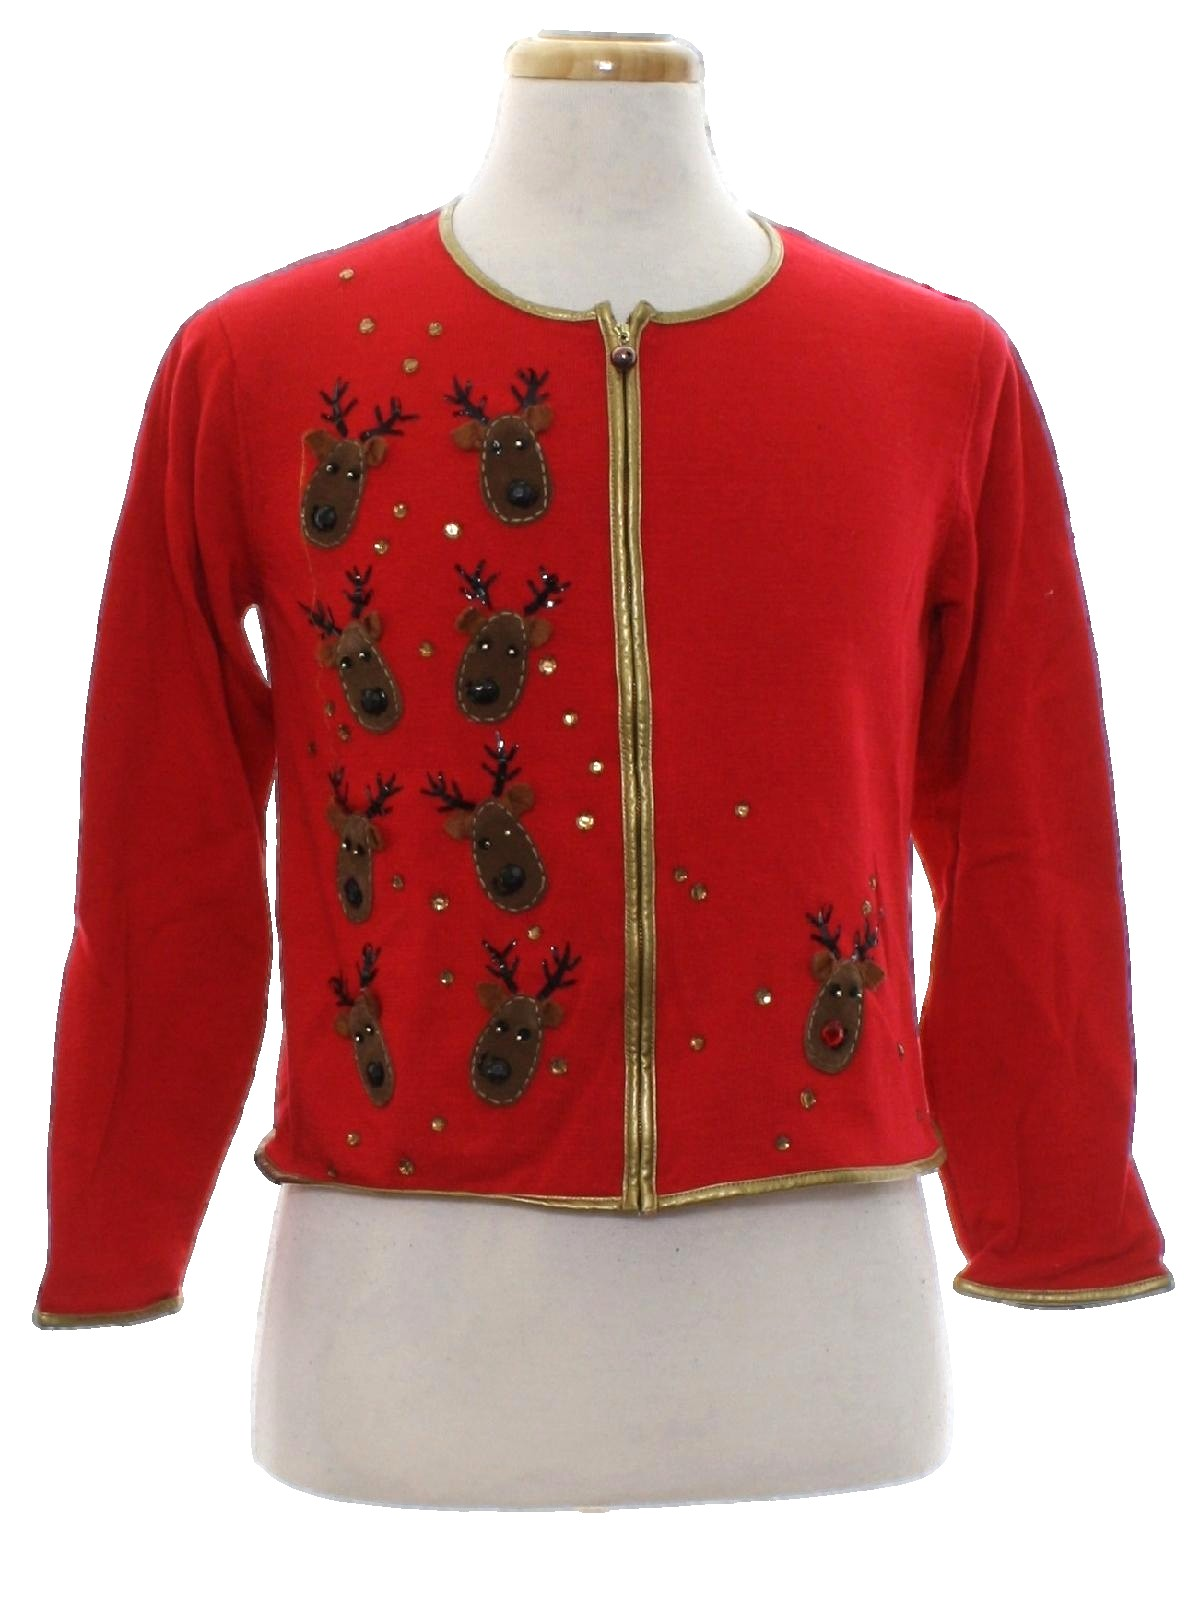 Womens Designer Ugly Christmas Sweater: -Christina Rotelli ...